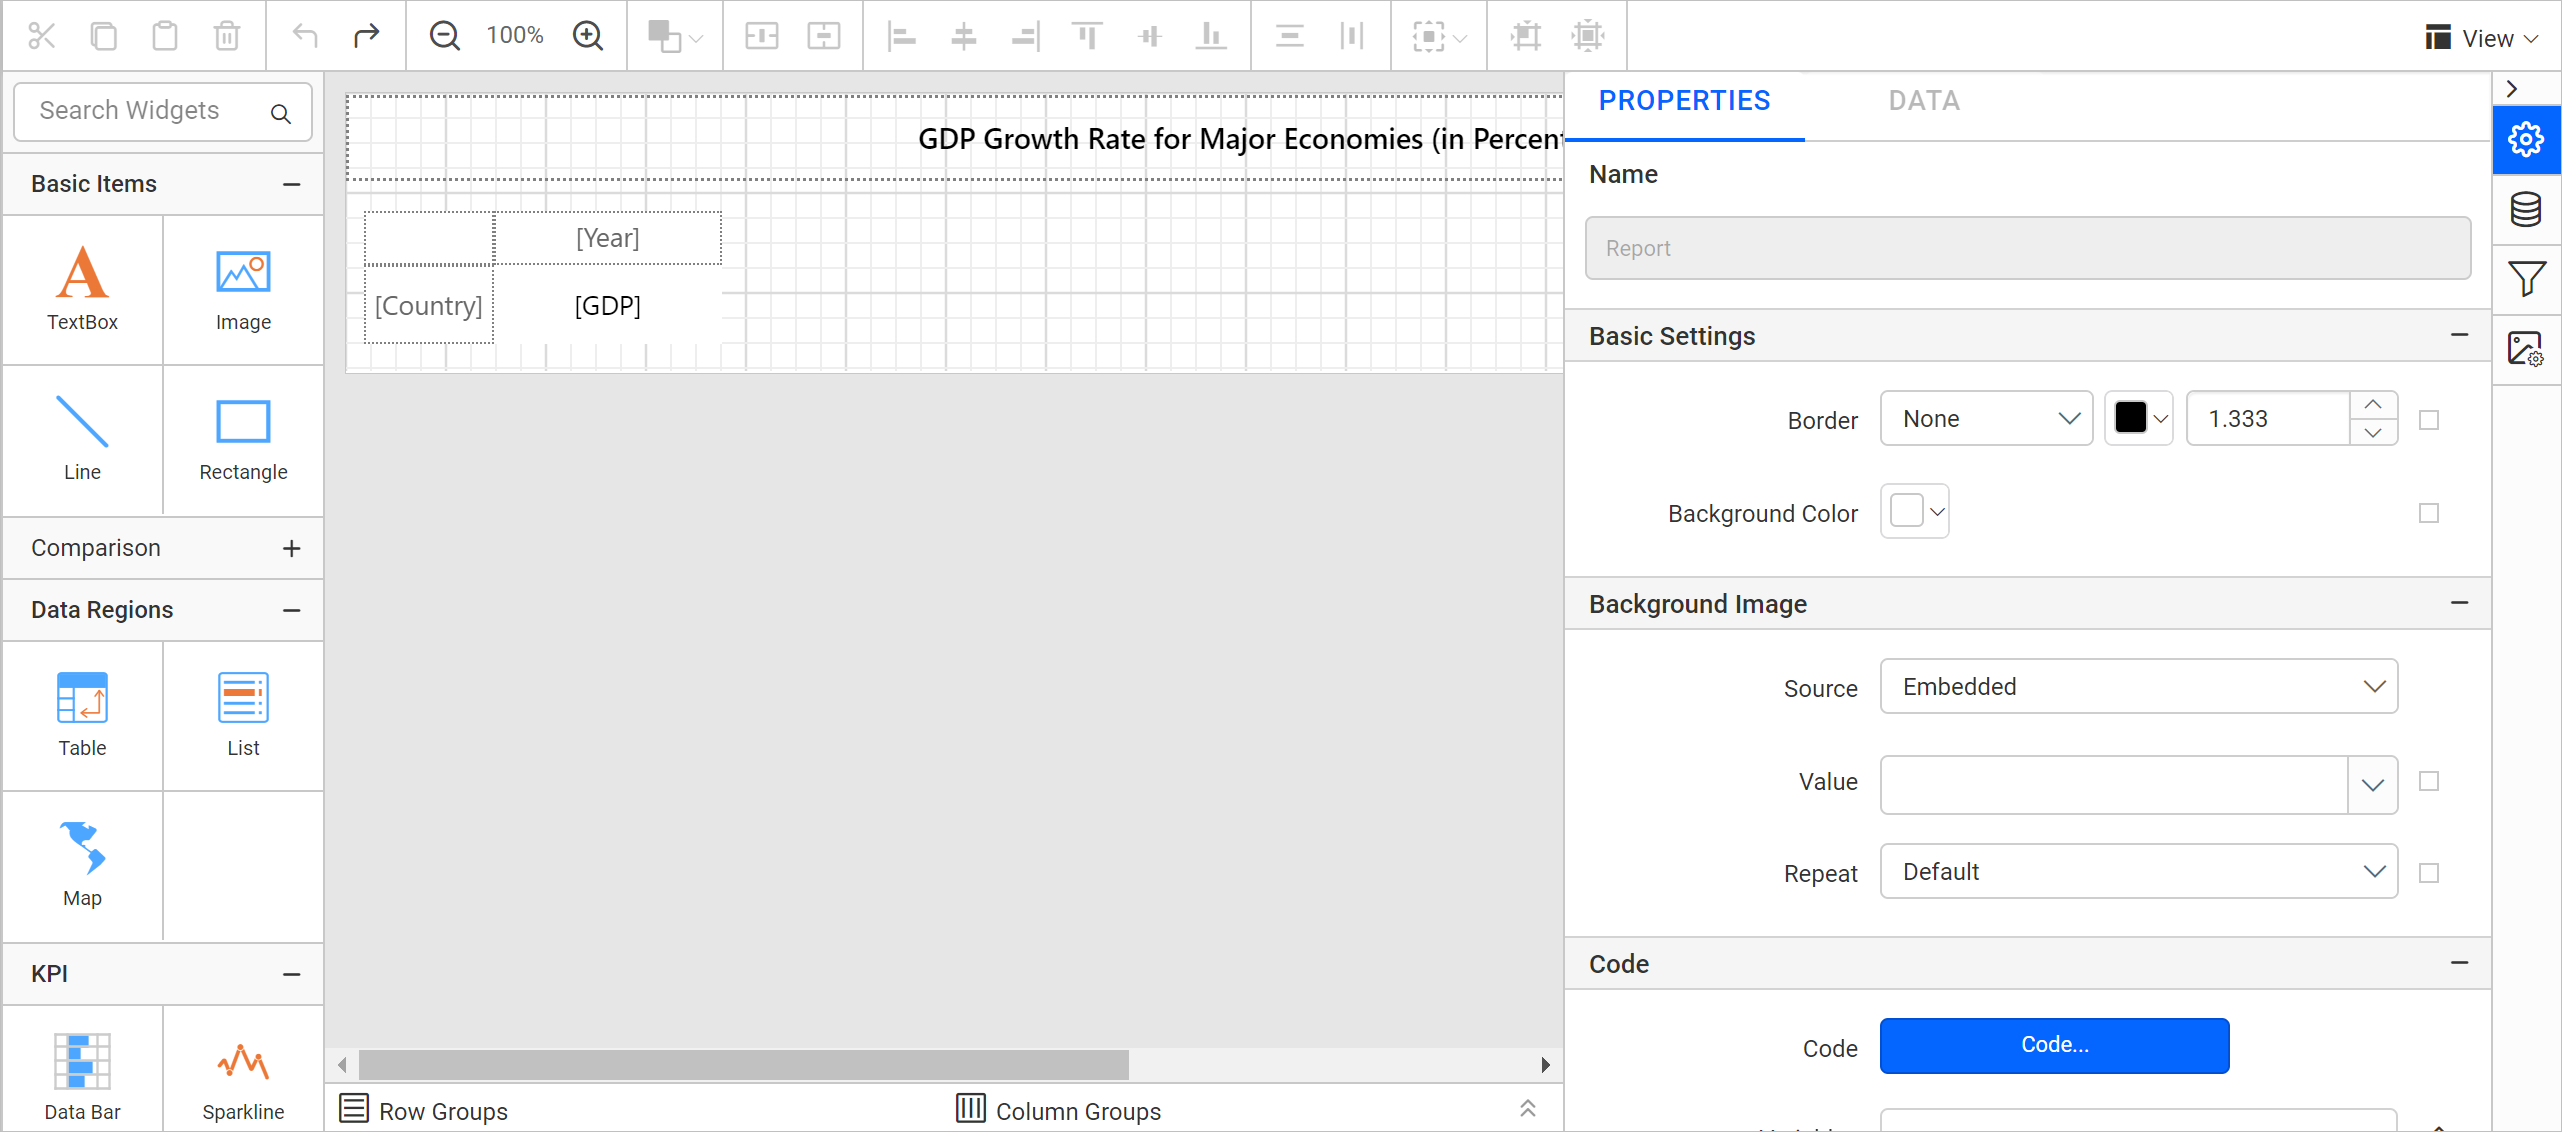 Report properties view